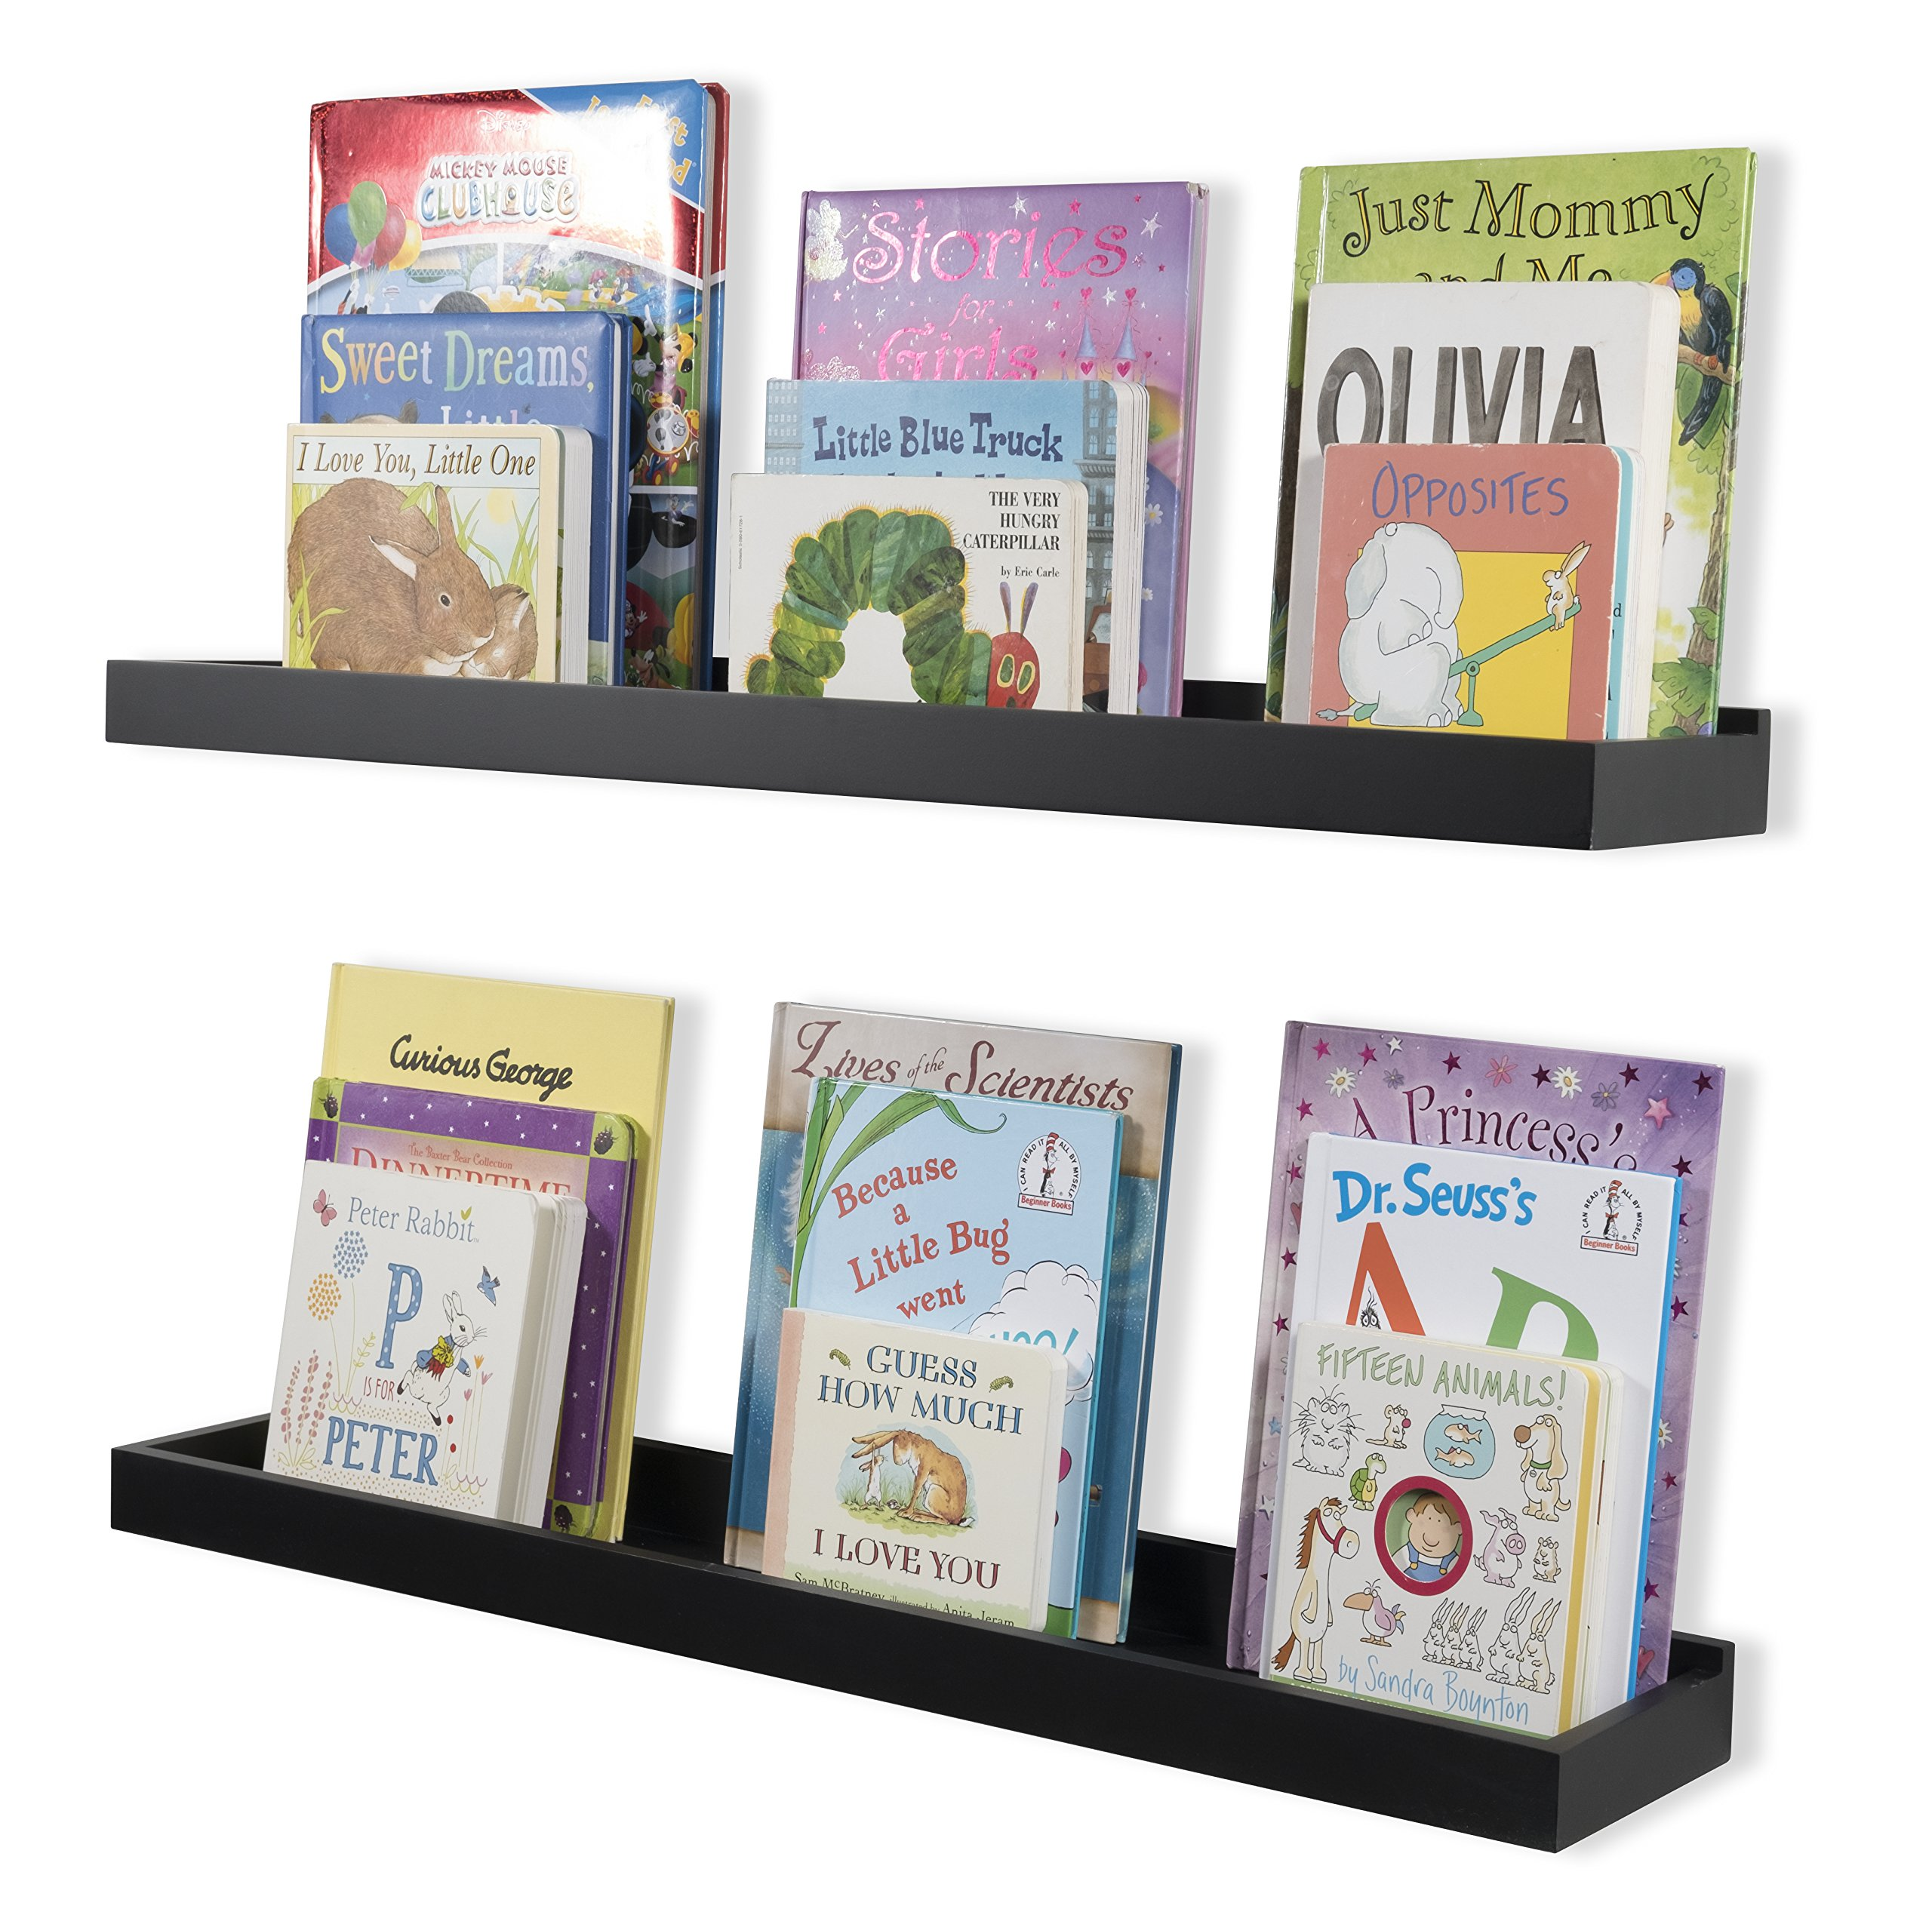 Wallniture Nursery Room Decor - Floating Book Shelves for Kids Room - 31 Inch Picture Ledge - Tray Toy Storage Display Black Set of 2